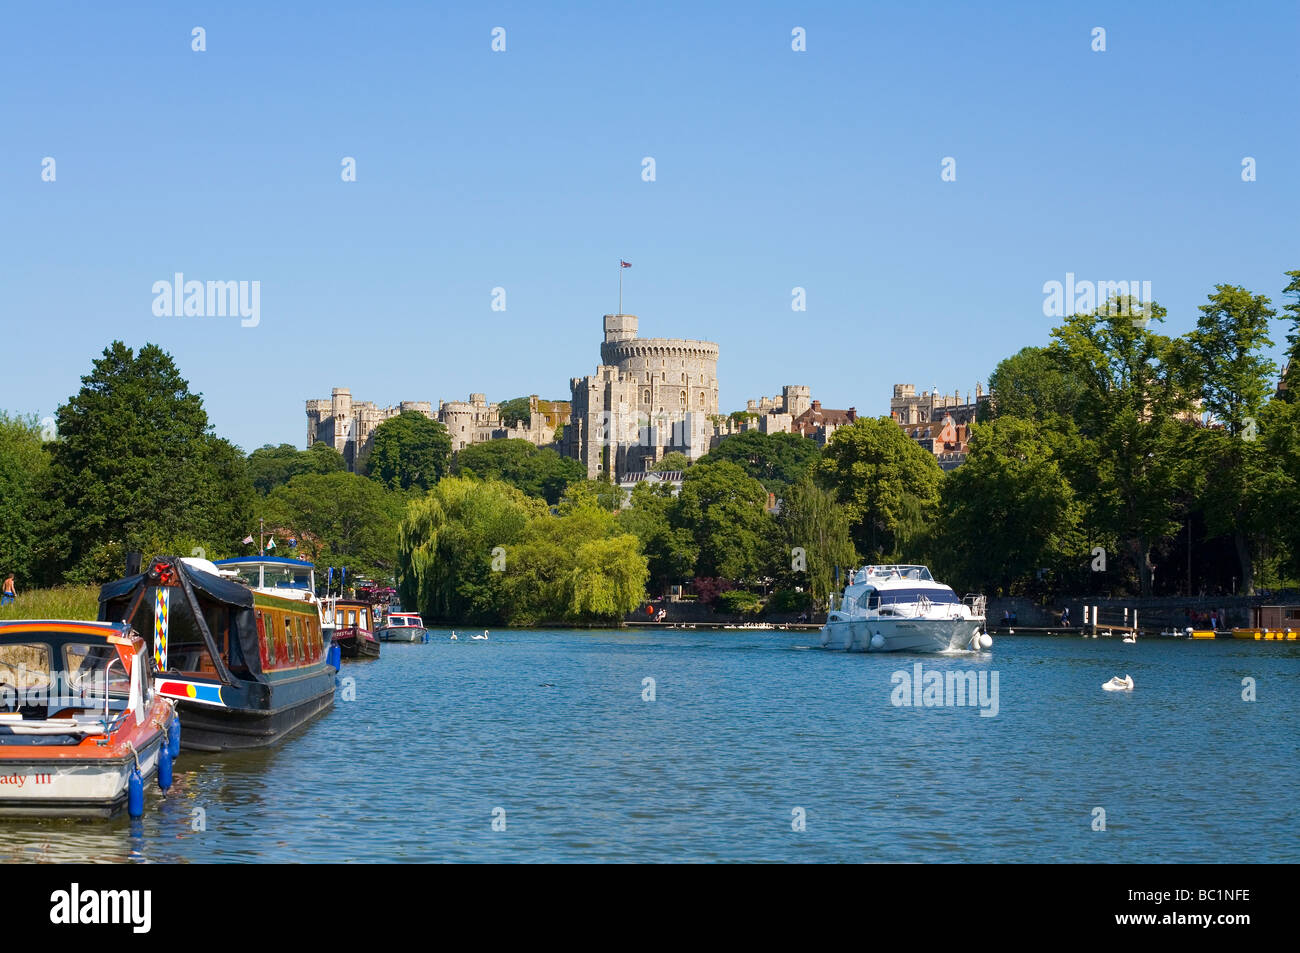 Windsor Castle and the river Thames in England - Stock Image